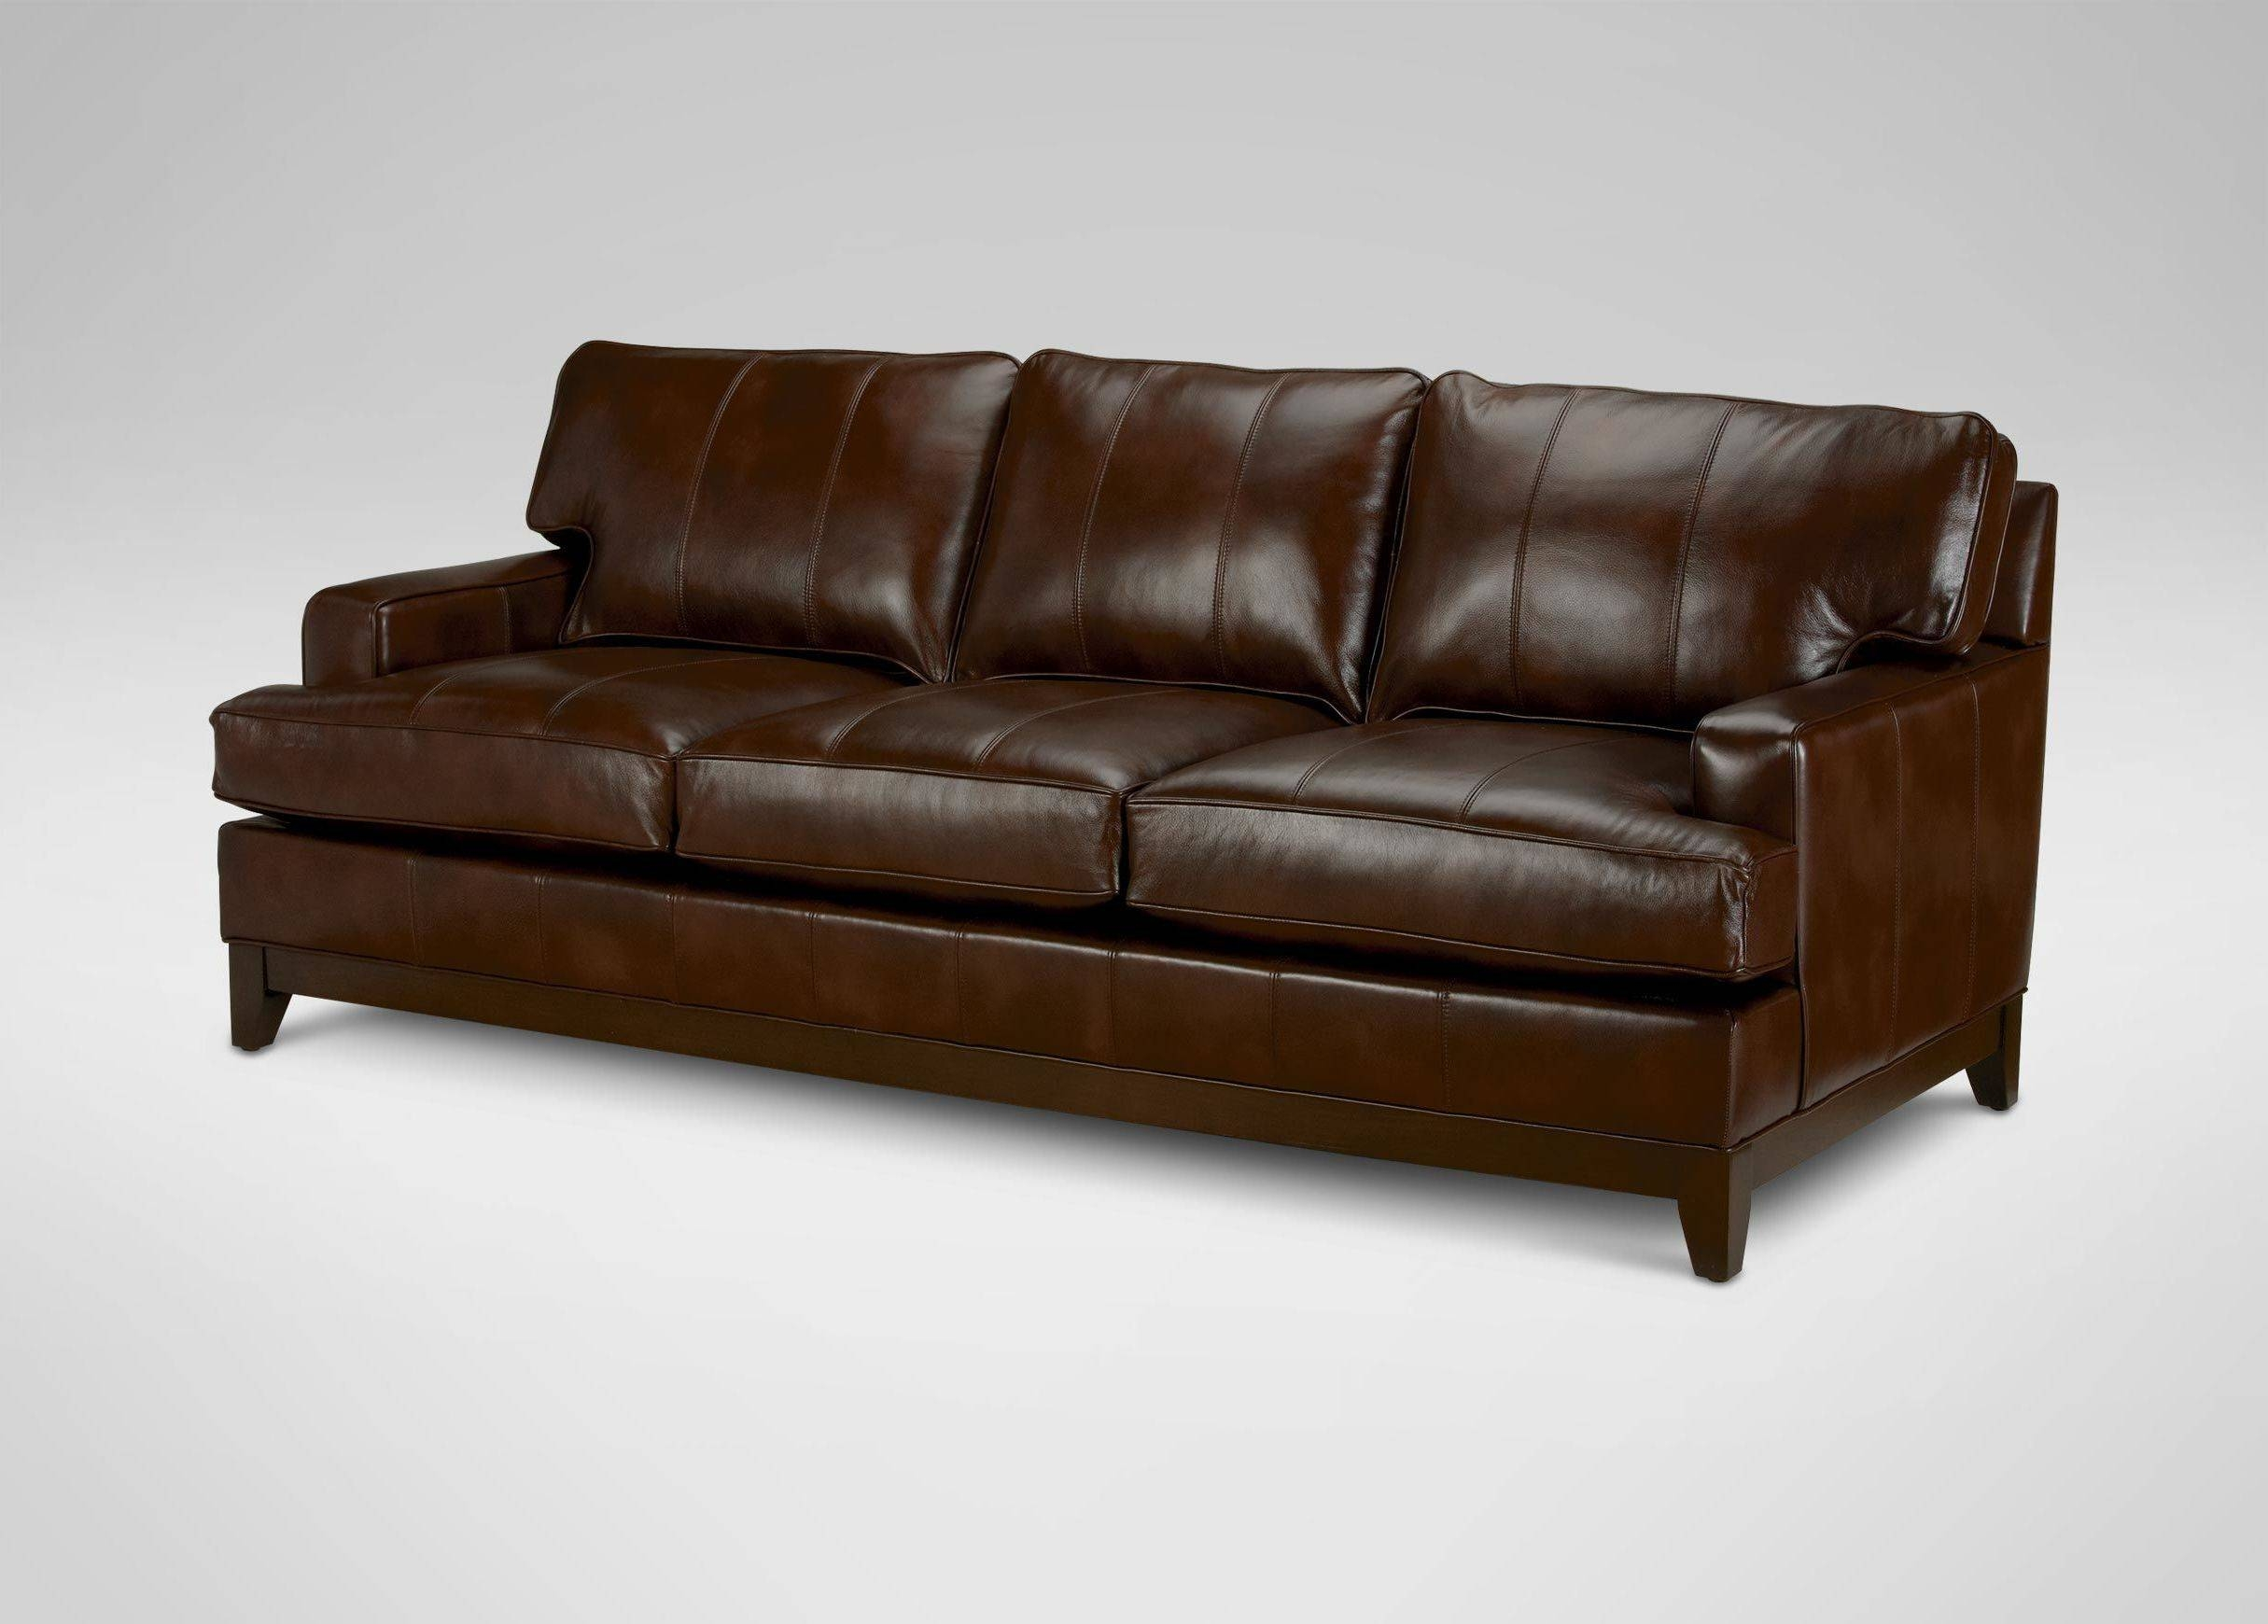 Sofas: Ethan Allen Sofa Bed | Sofas Ethan Allen | Ethan Allen pertaining to Ethan Allen Whitney Sofas (Image 12 of 15)